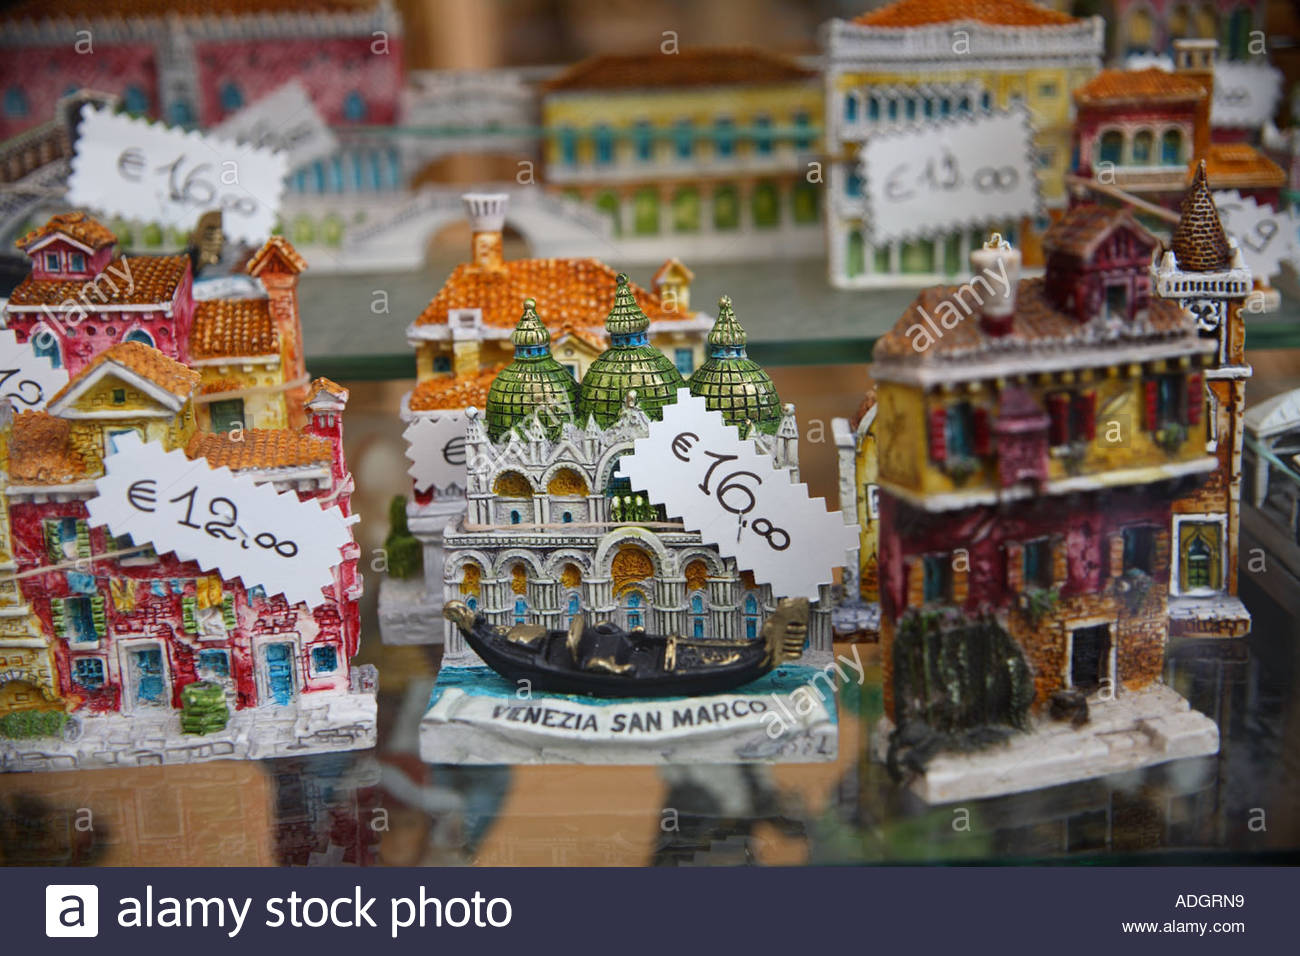 souvenirs of venice models of san marco basilica with